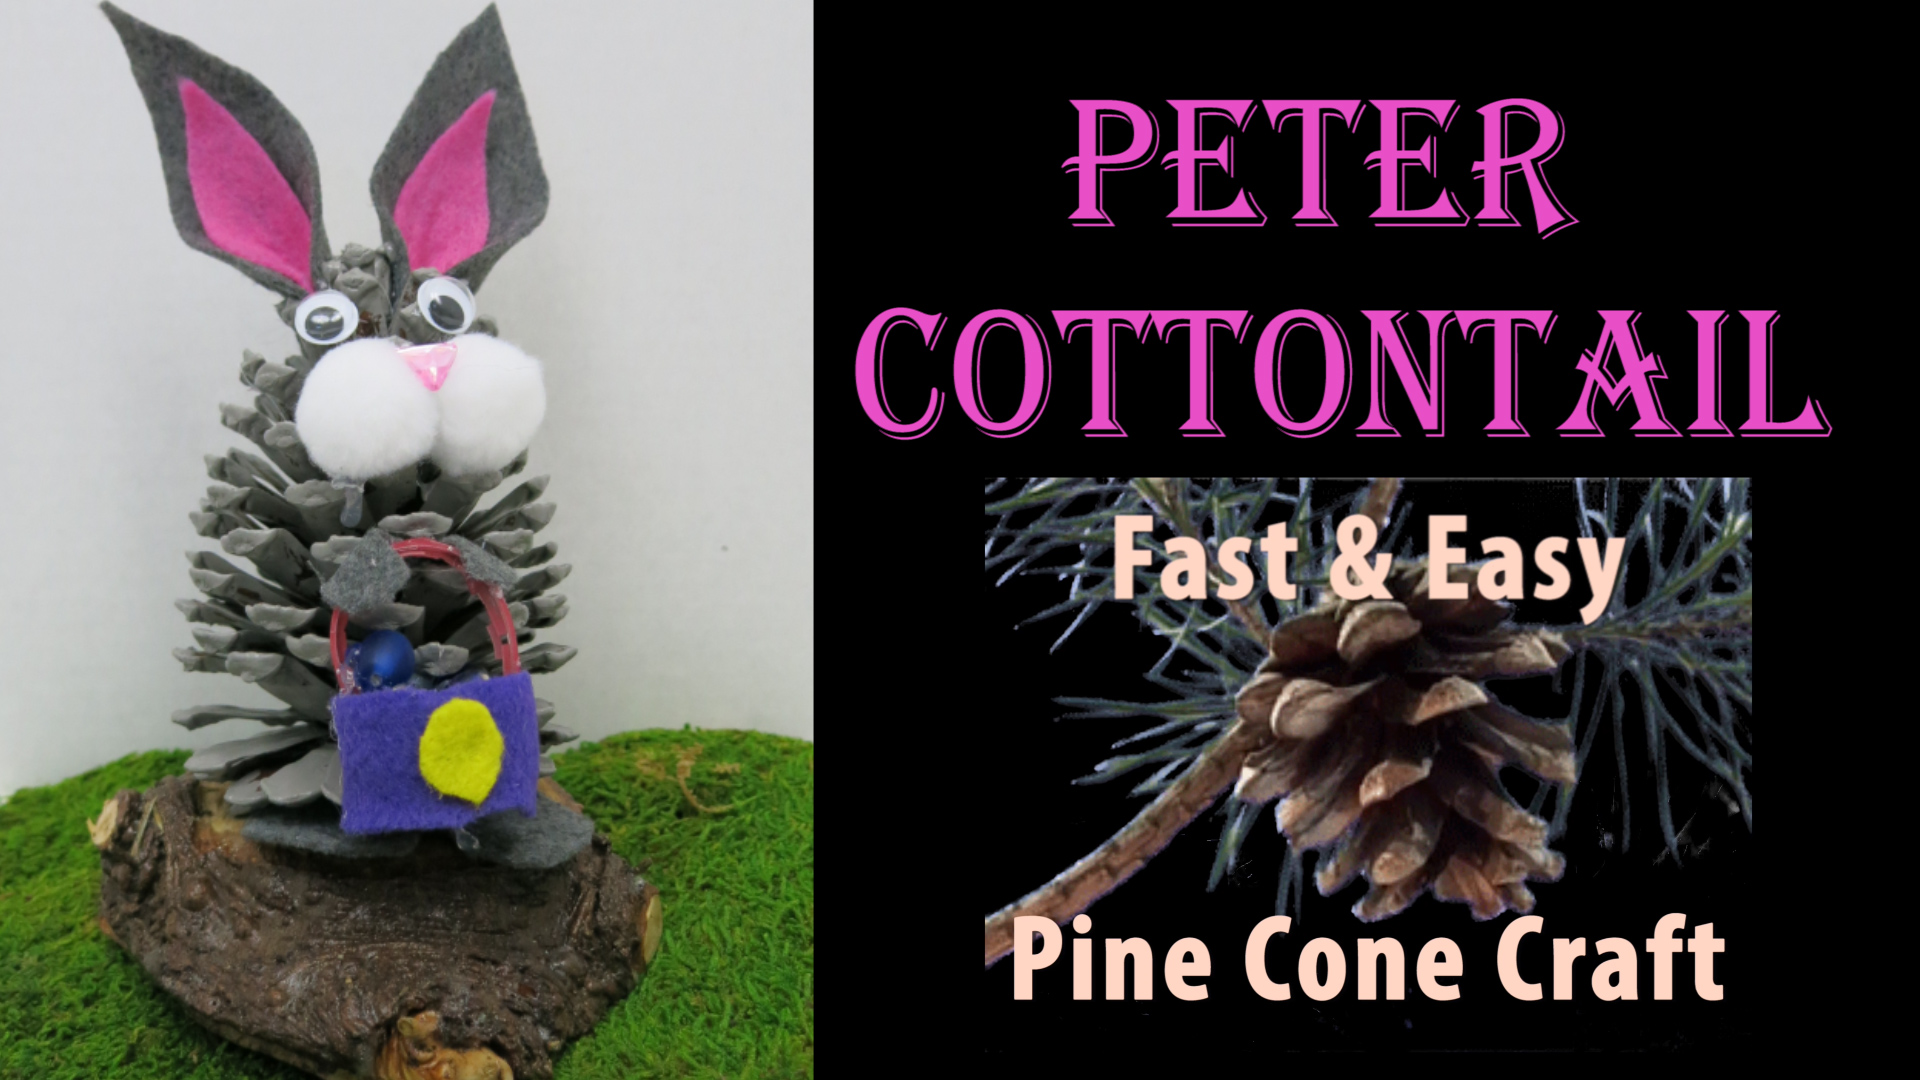 Peter Cottontail Fast and Easy Pine Cone Craft for Easter.jpg